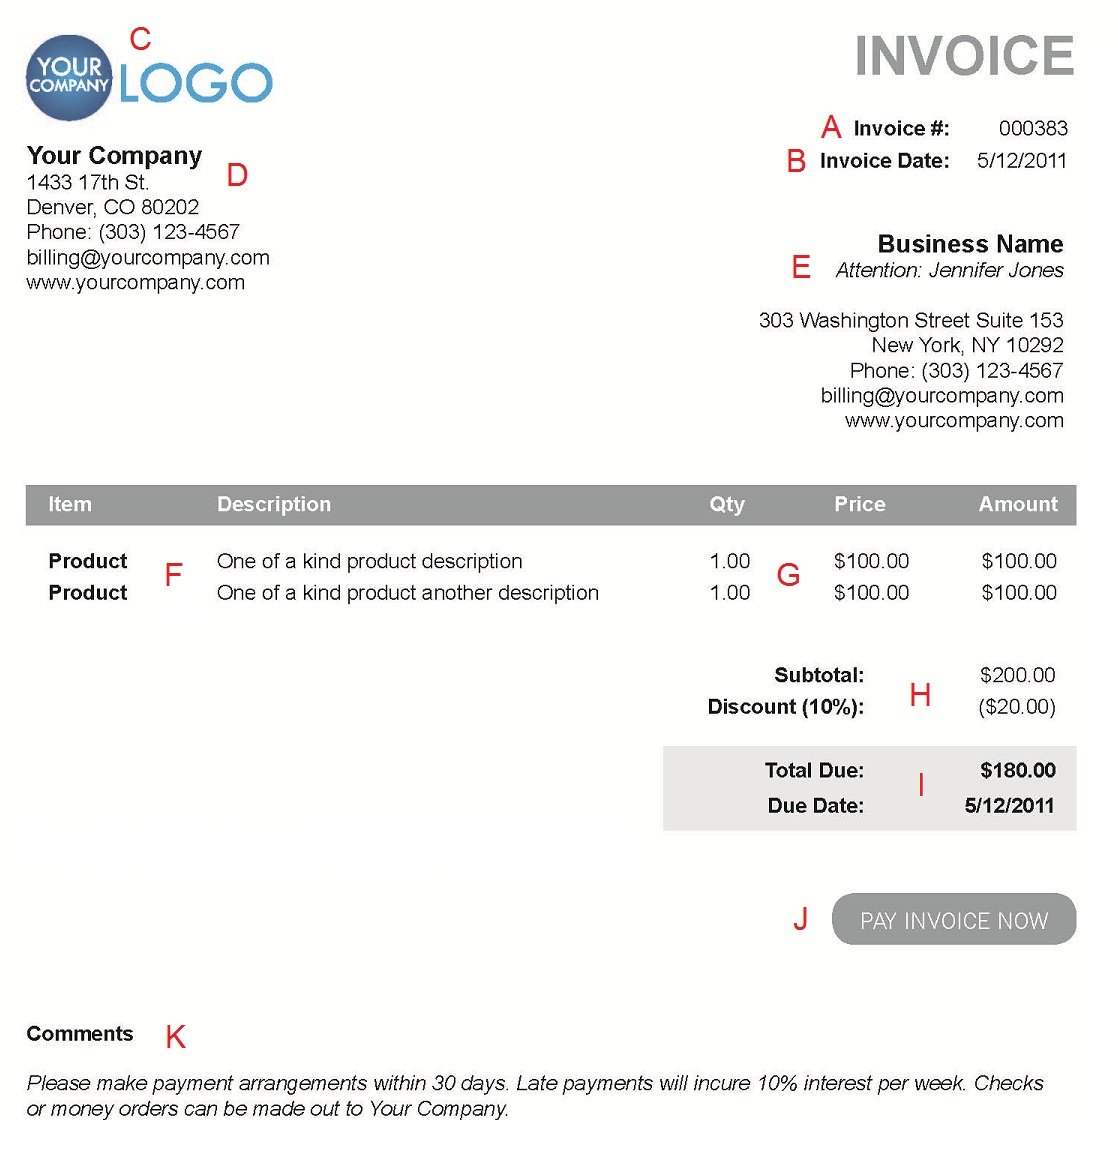 Totallocalus  Winsome The  Different Sections Of An Electronic Payment Invoice With Fair A  With Captivating Samples Of An Invoice Also Sage Email Invoices In Addition A Invoice And Whmcs Invoice Template As Well As Comercial Invoice Template Additionally Template Invoice Uk From Paysimplecom With Totallocalus  Fair The  Different Sections Of An Electronic Payment Invoice With Captivating A  And Winsome Samples Of An Invoice Also Sage Email Invoices In Addition A Invoice From Paysimplecom